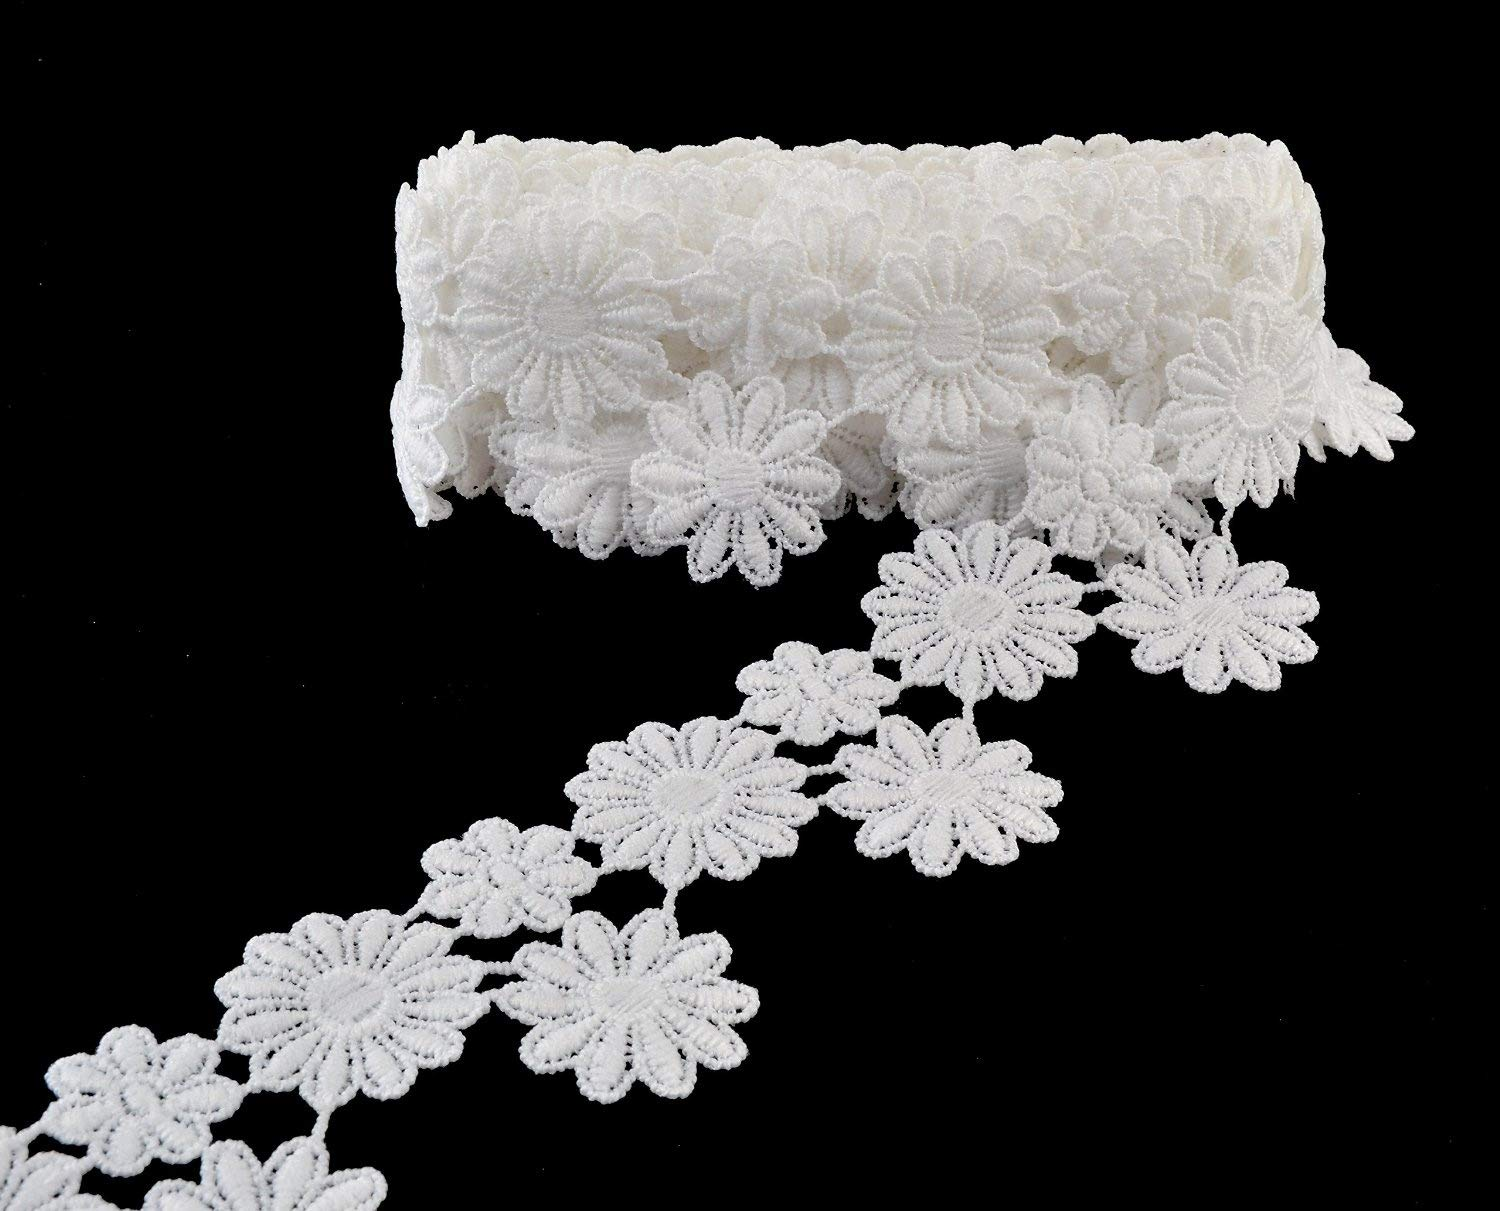 eZthings® Venise Edging Lace Trim From Eyelet Fabric For DIY Craft Venice Trims (3 Yard, Flower)